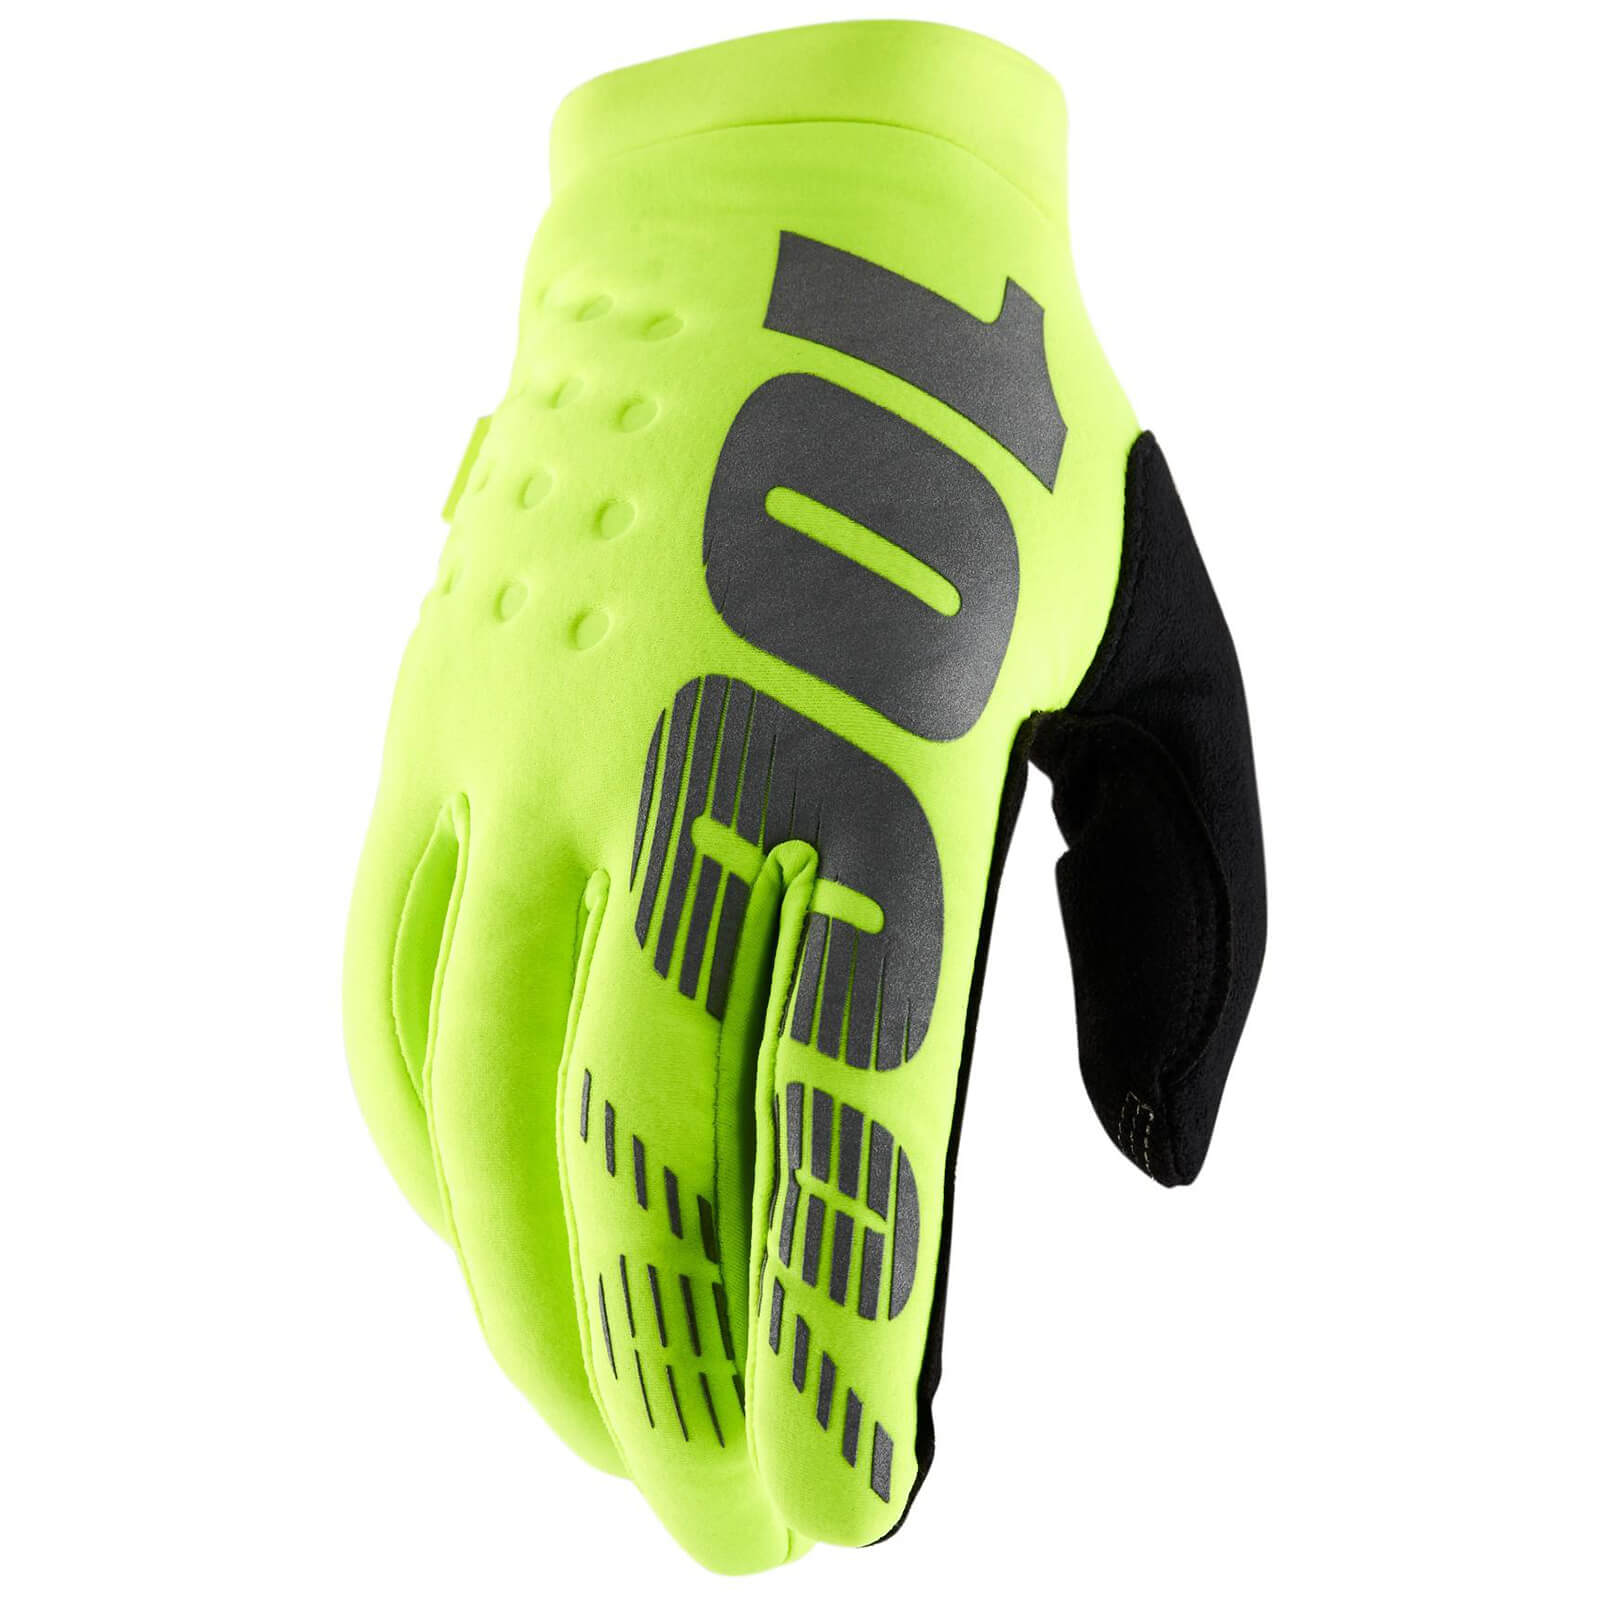 Image of 100% Brisker Cold Weather Gloves - Fluro Yellow / Black / Small